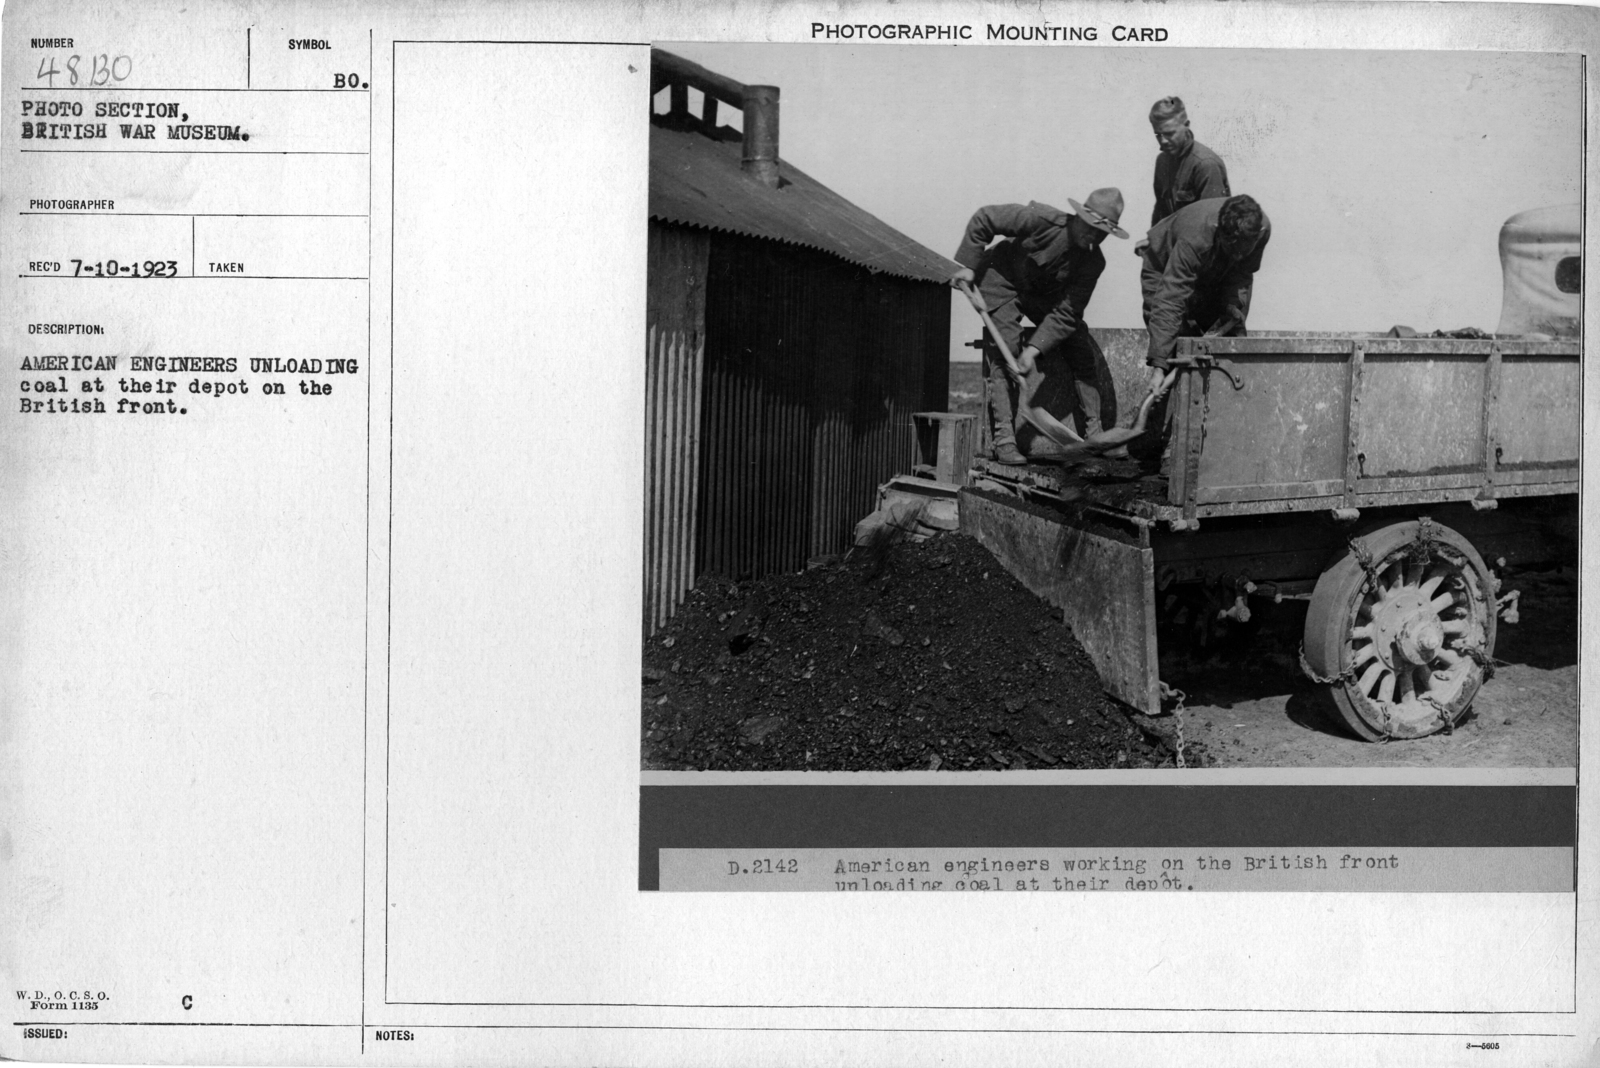 American Engineers unloading coal as their depot on the British front